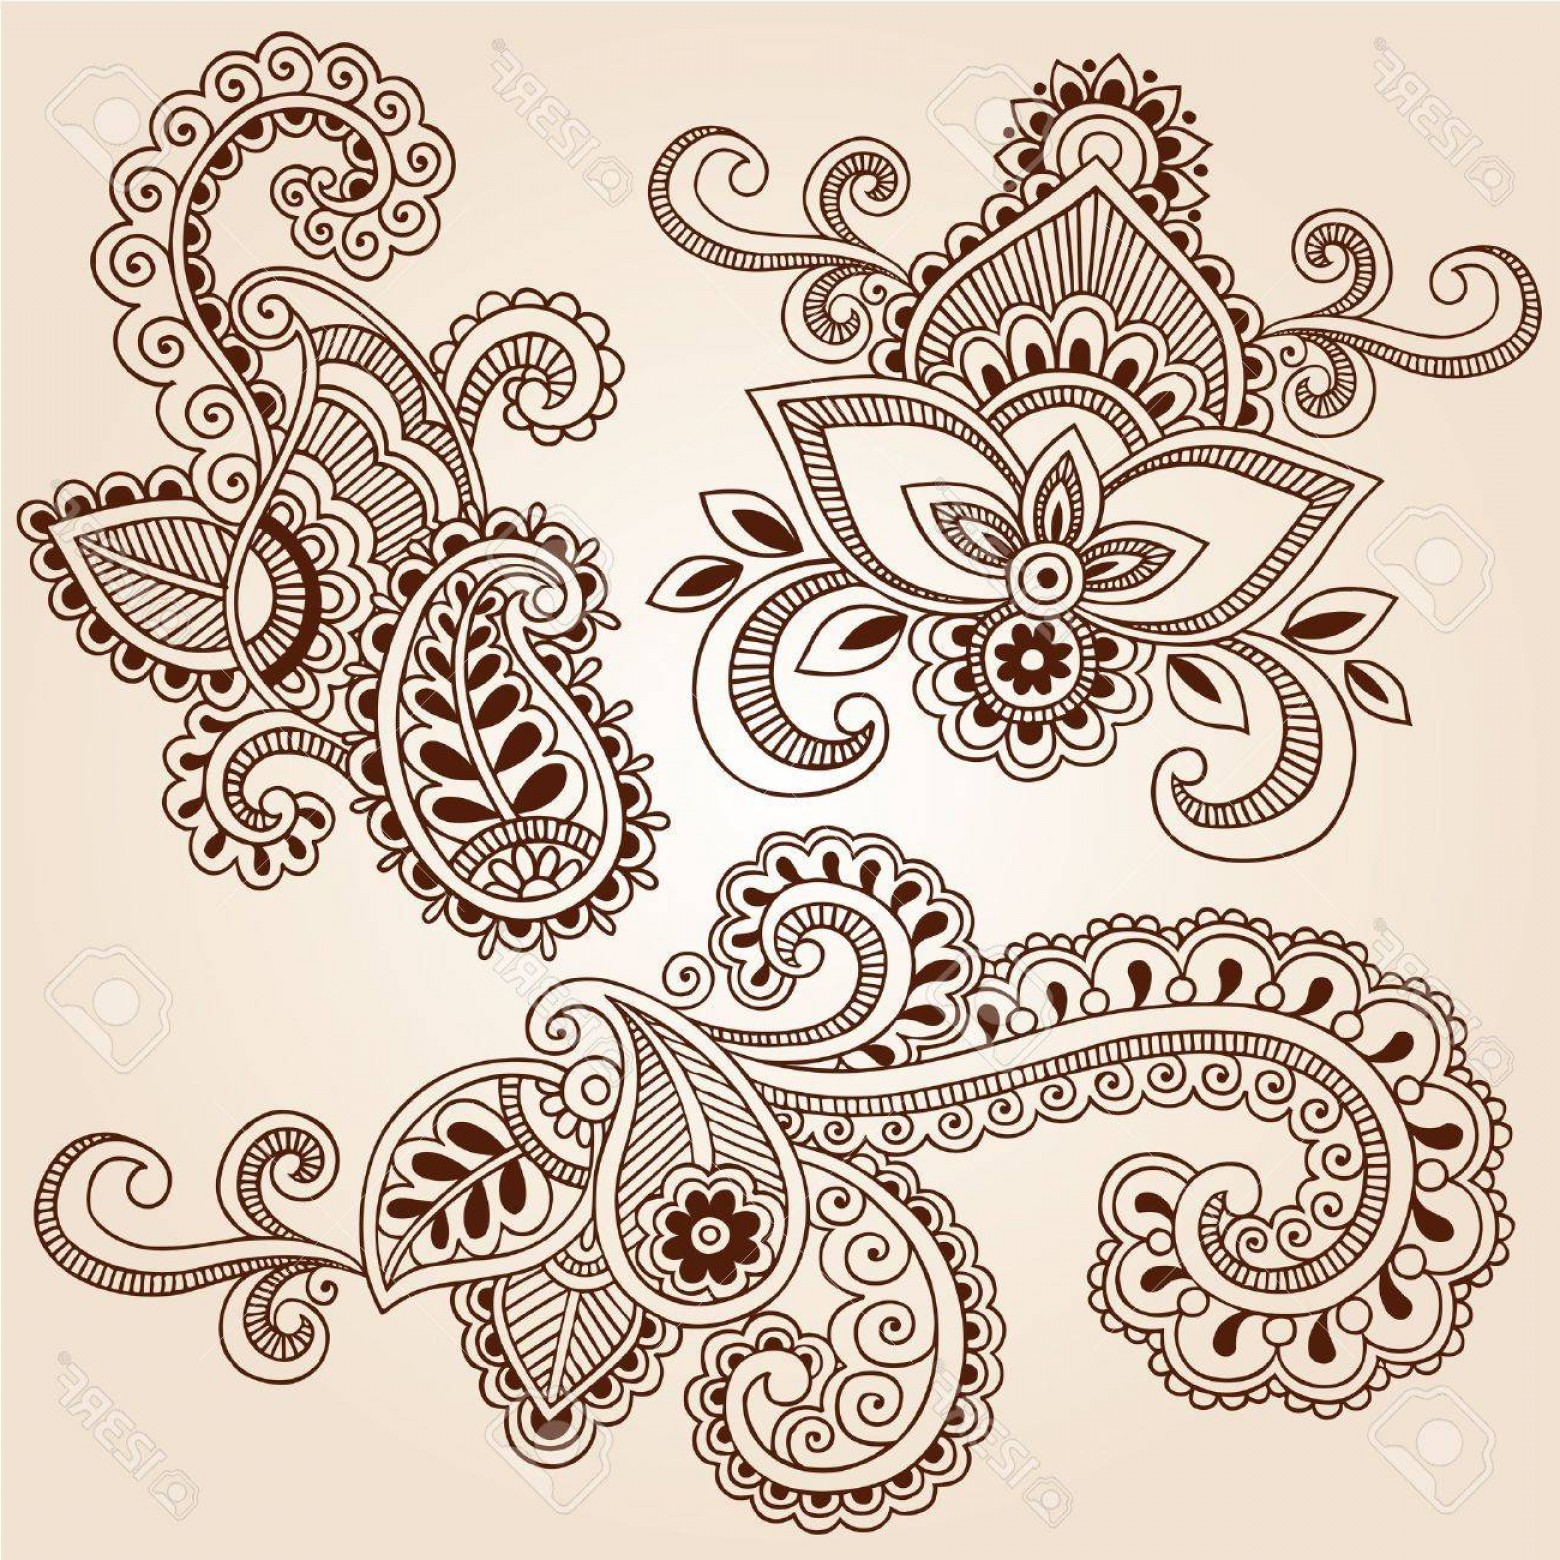 Paisley Swirl Flower Vector: Photohand Drawn Henna Paisley Flowers Mehndi Doodles Abstract Floral Vector Illustration Design Elements